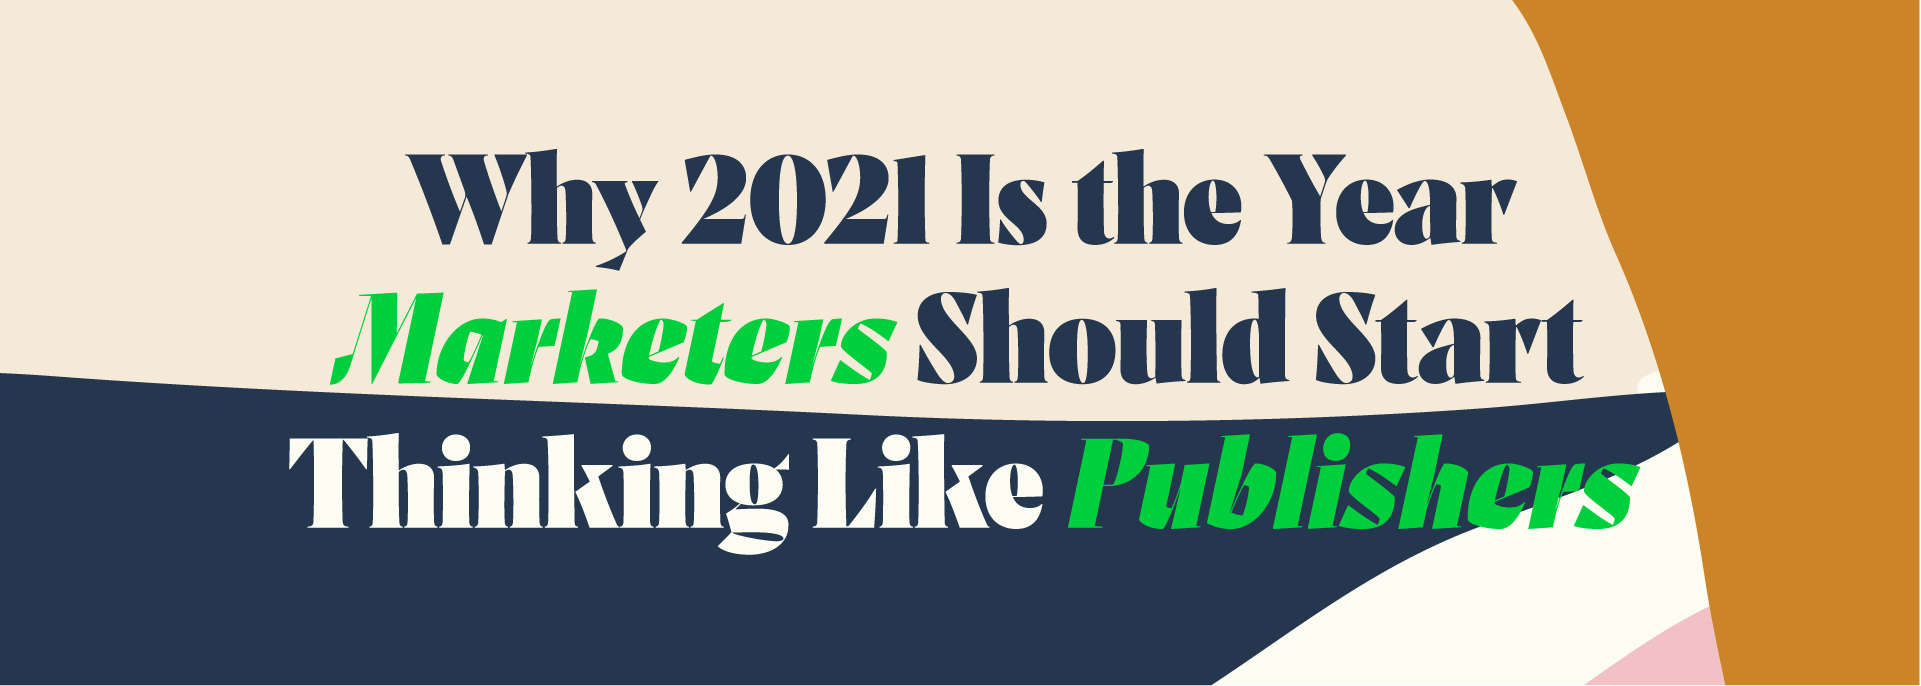 Colorful blue orange cream pink graphic image that says: Why 2021 Is the Year Marketers Should Start Thinking Like Publishers